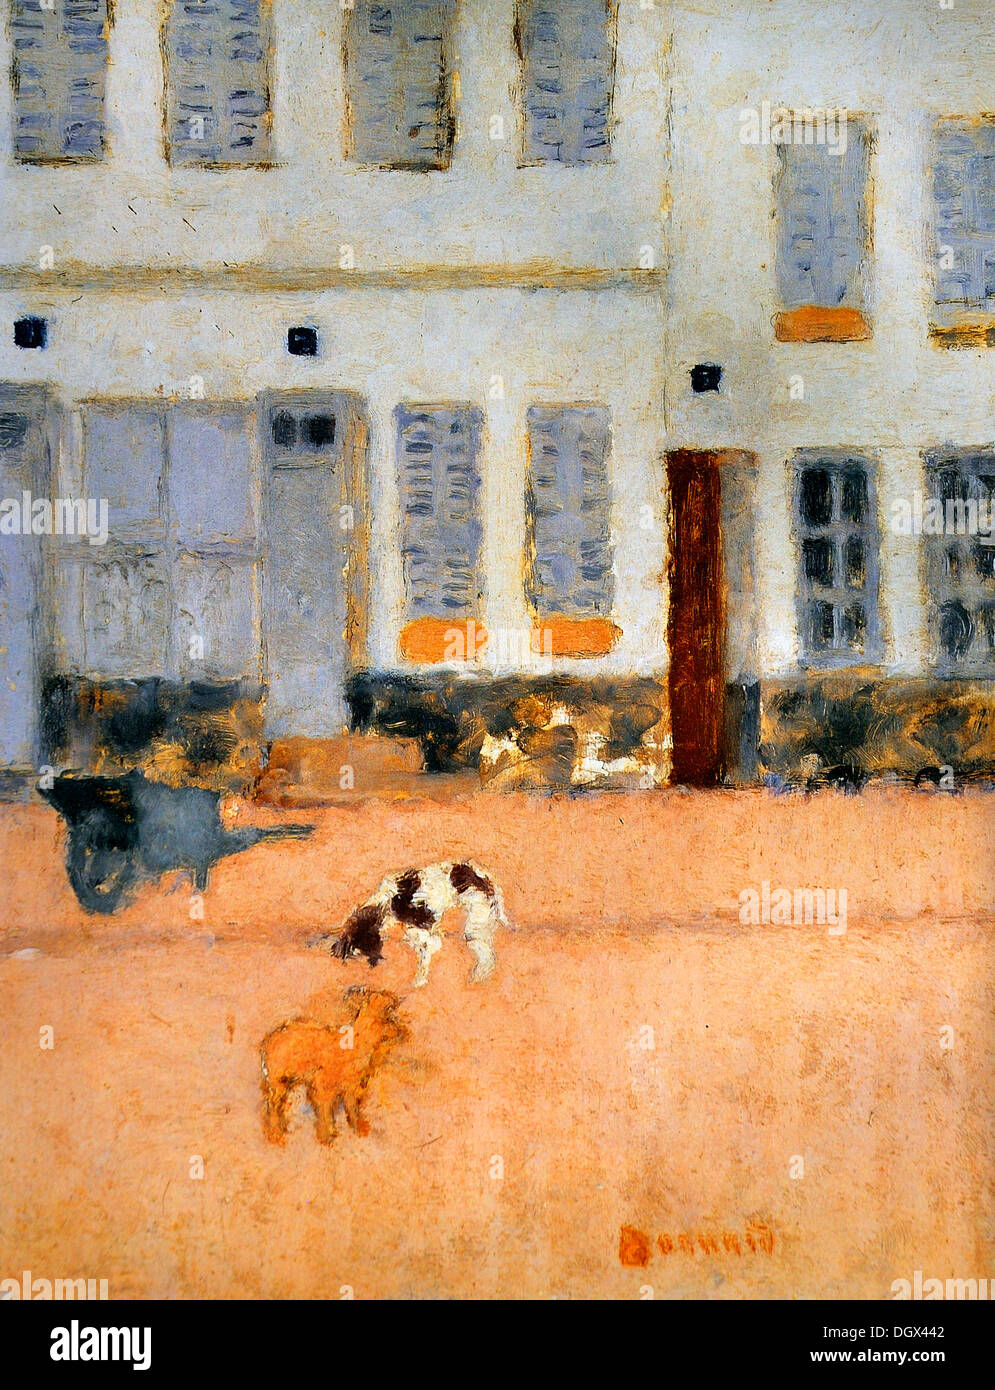 Two Dogs in a Deserted Street - by Pierre Bonnard, 1894 - Stock Image